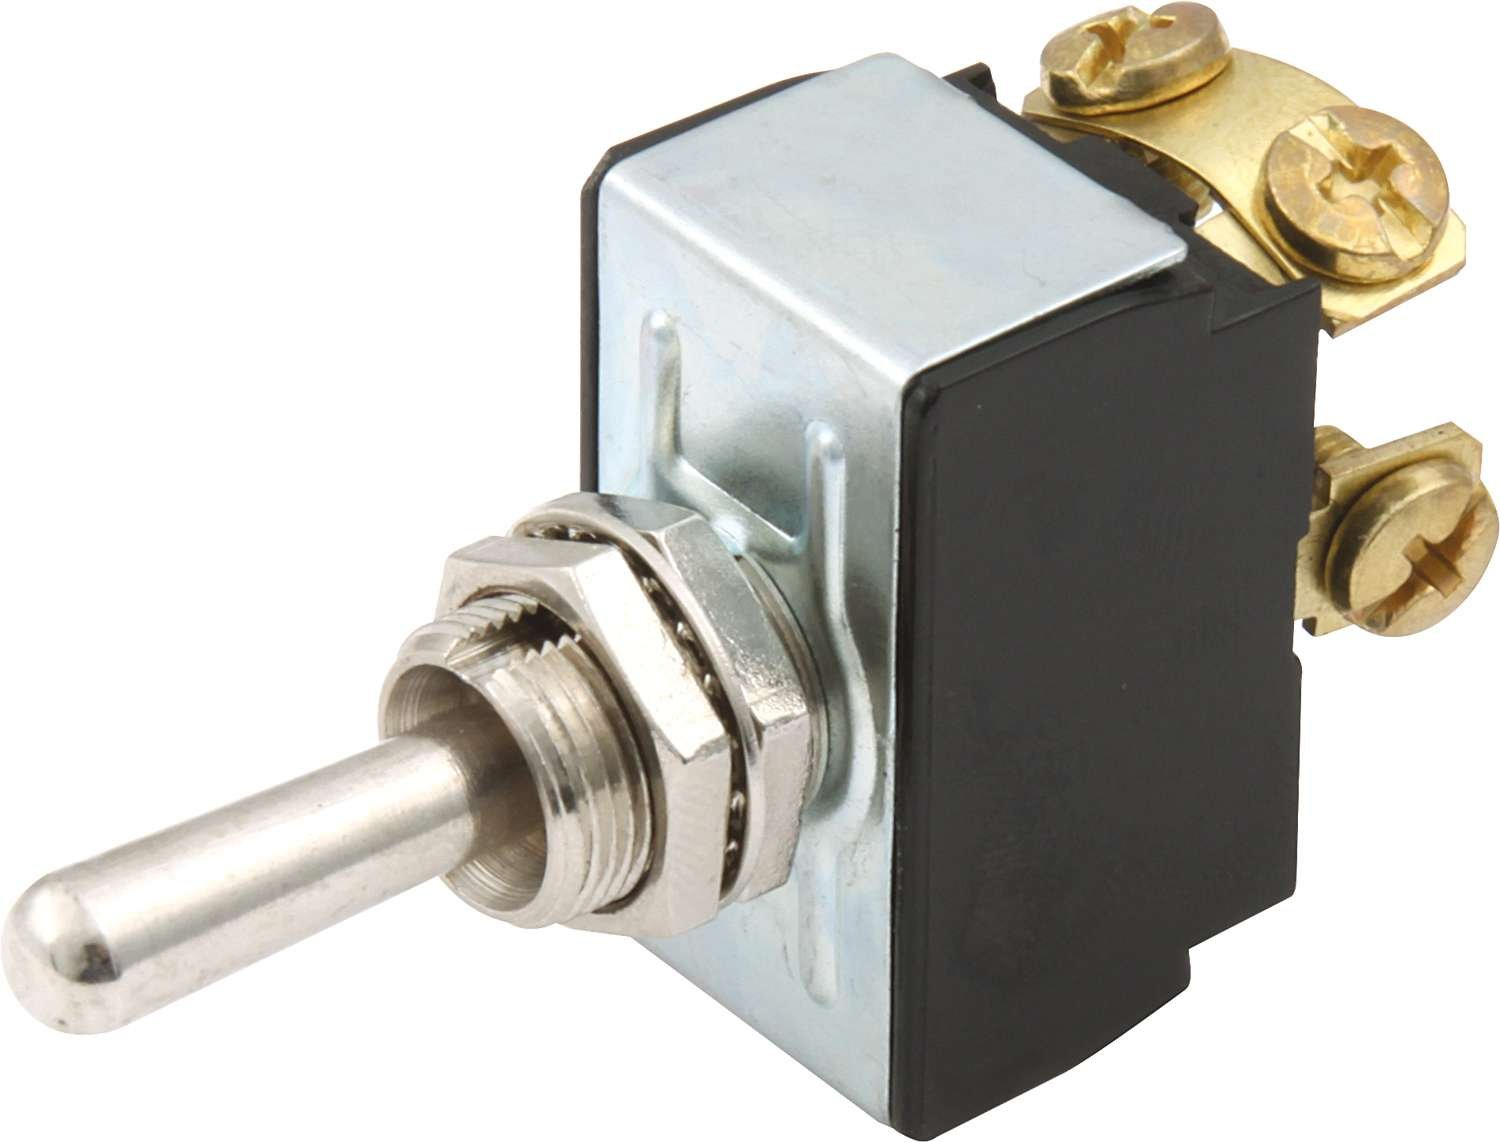 Quickcar Racing Products 50-506 Ignition/Start Switch